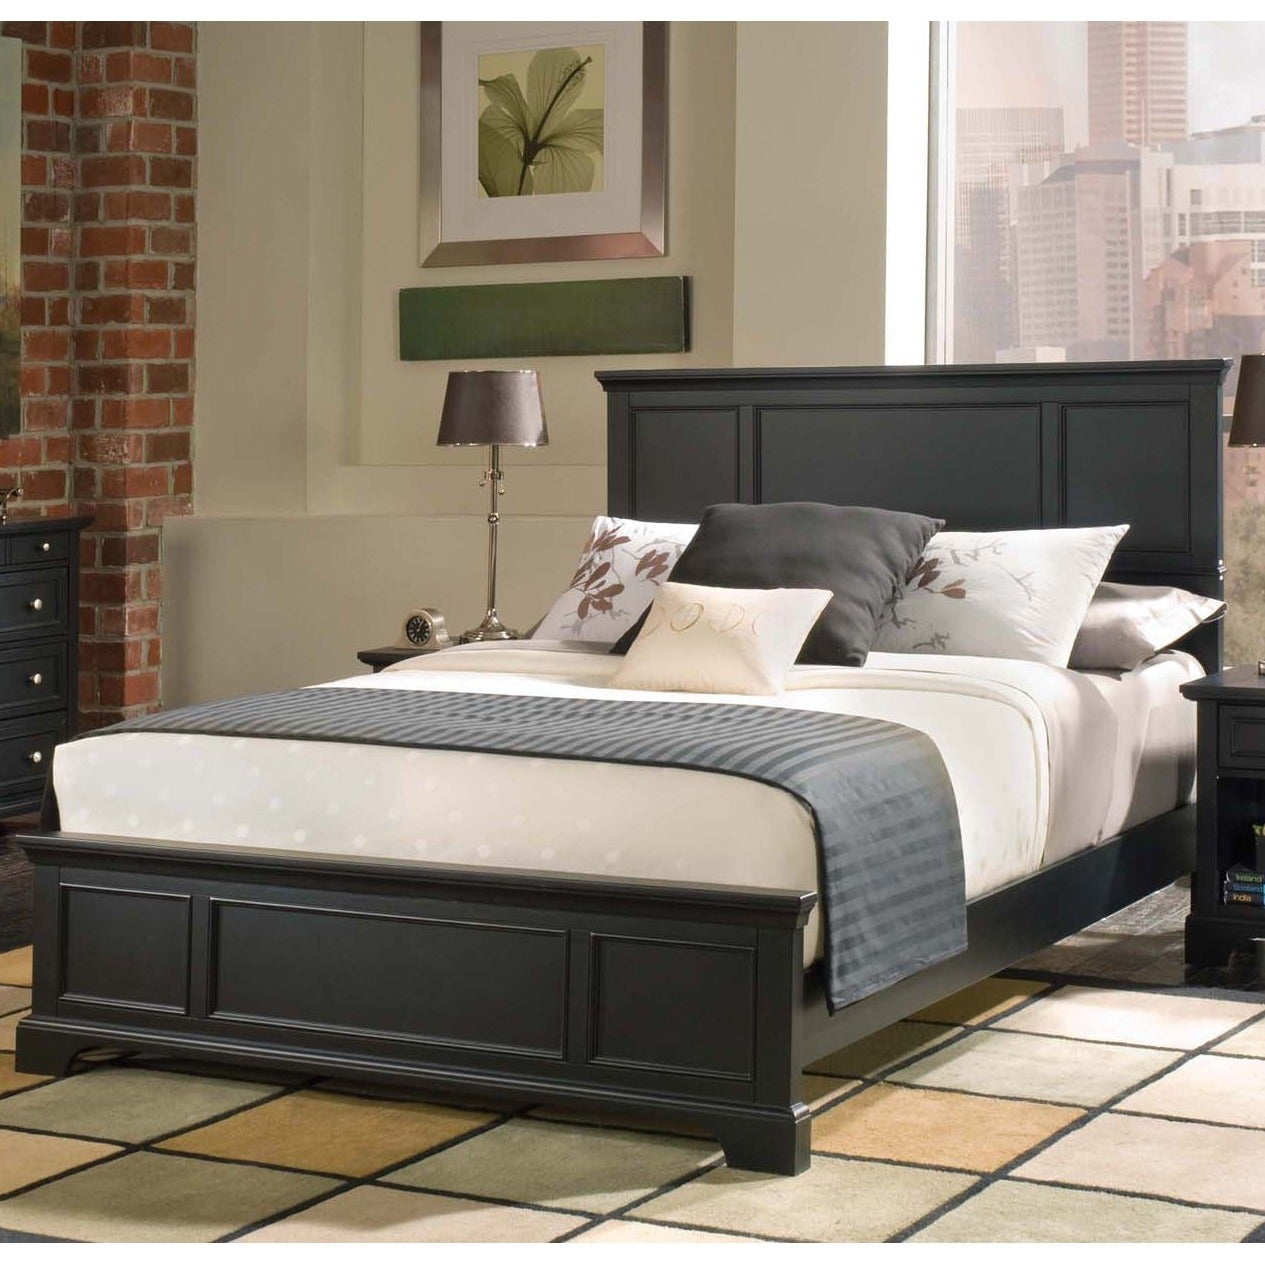 Copper Grove Helena Black Queen Bed   Free Shipping Today   Overstock    14188276